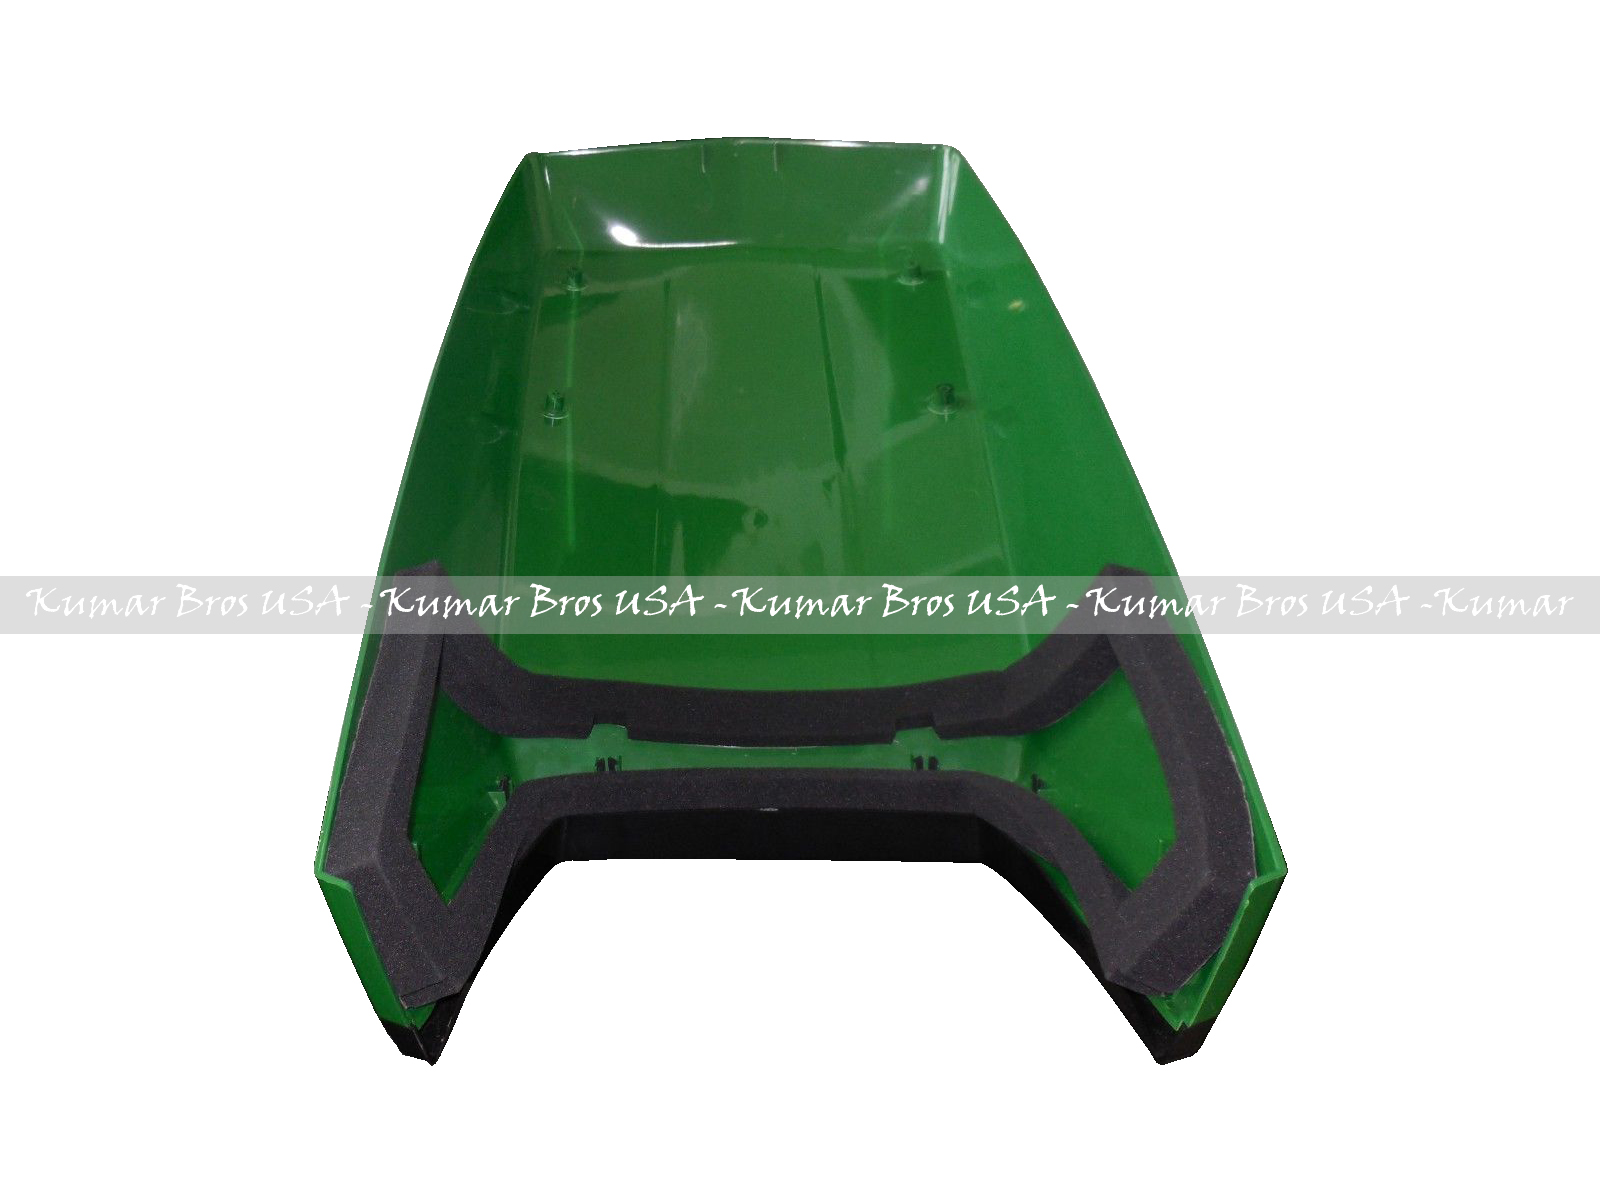 New Hood & Side Panels Replace AM128986 AM128983 AM128982 Fits John Deere  425 445 455